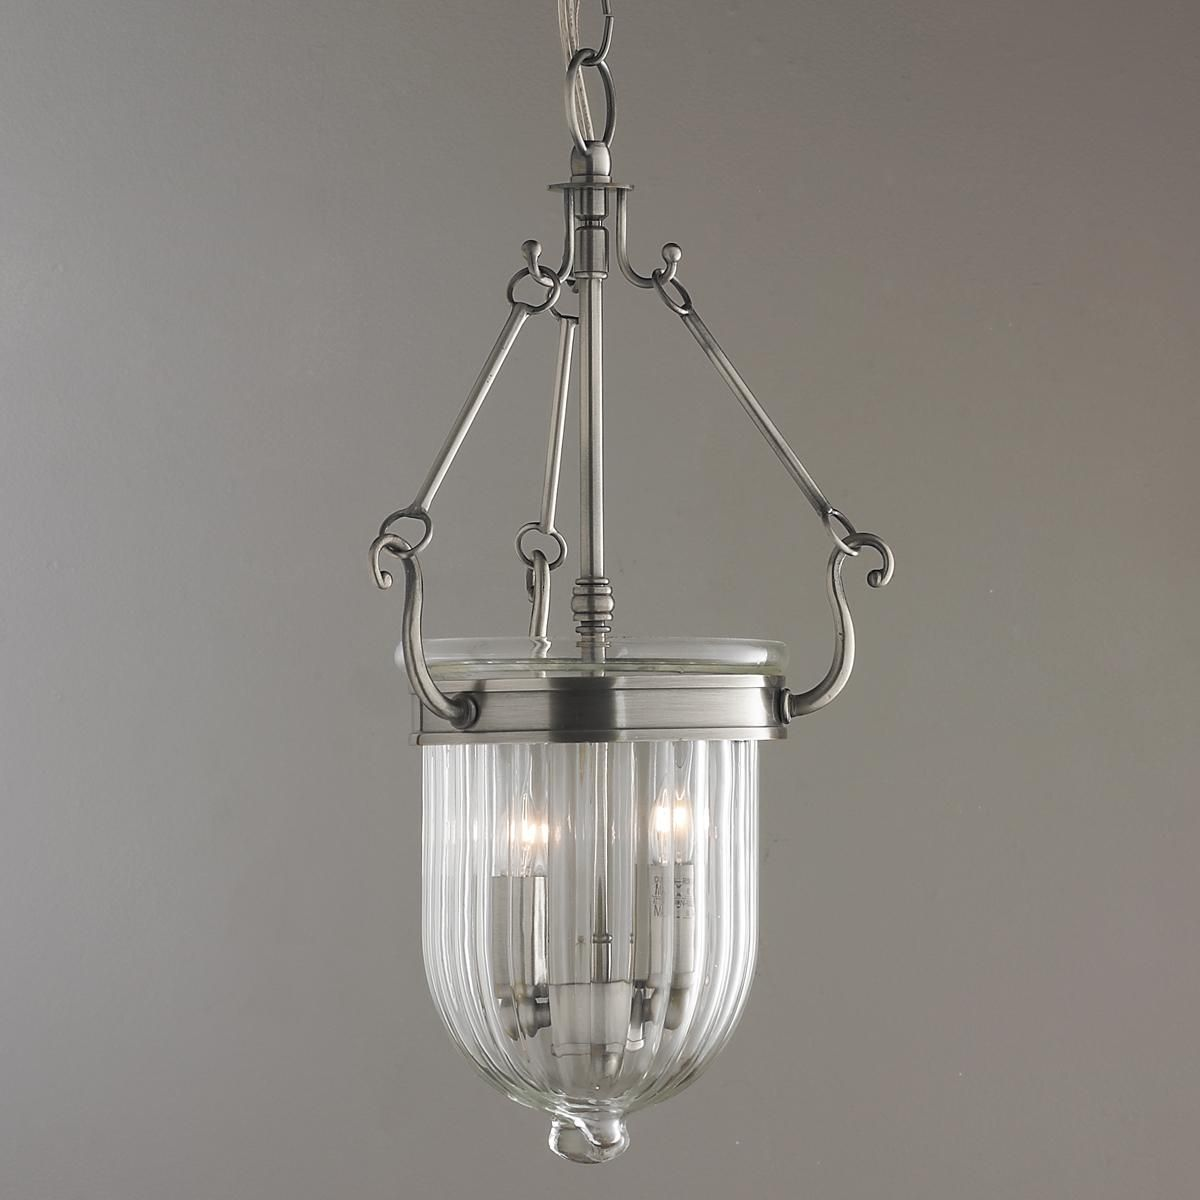 Colonial Bell Shaped Classic Hanging Lantern Colonial Light Fixtures Hanging Lanterns Glass Globe Pendant